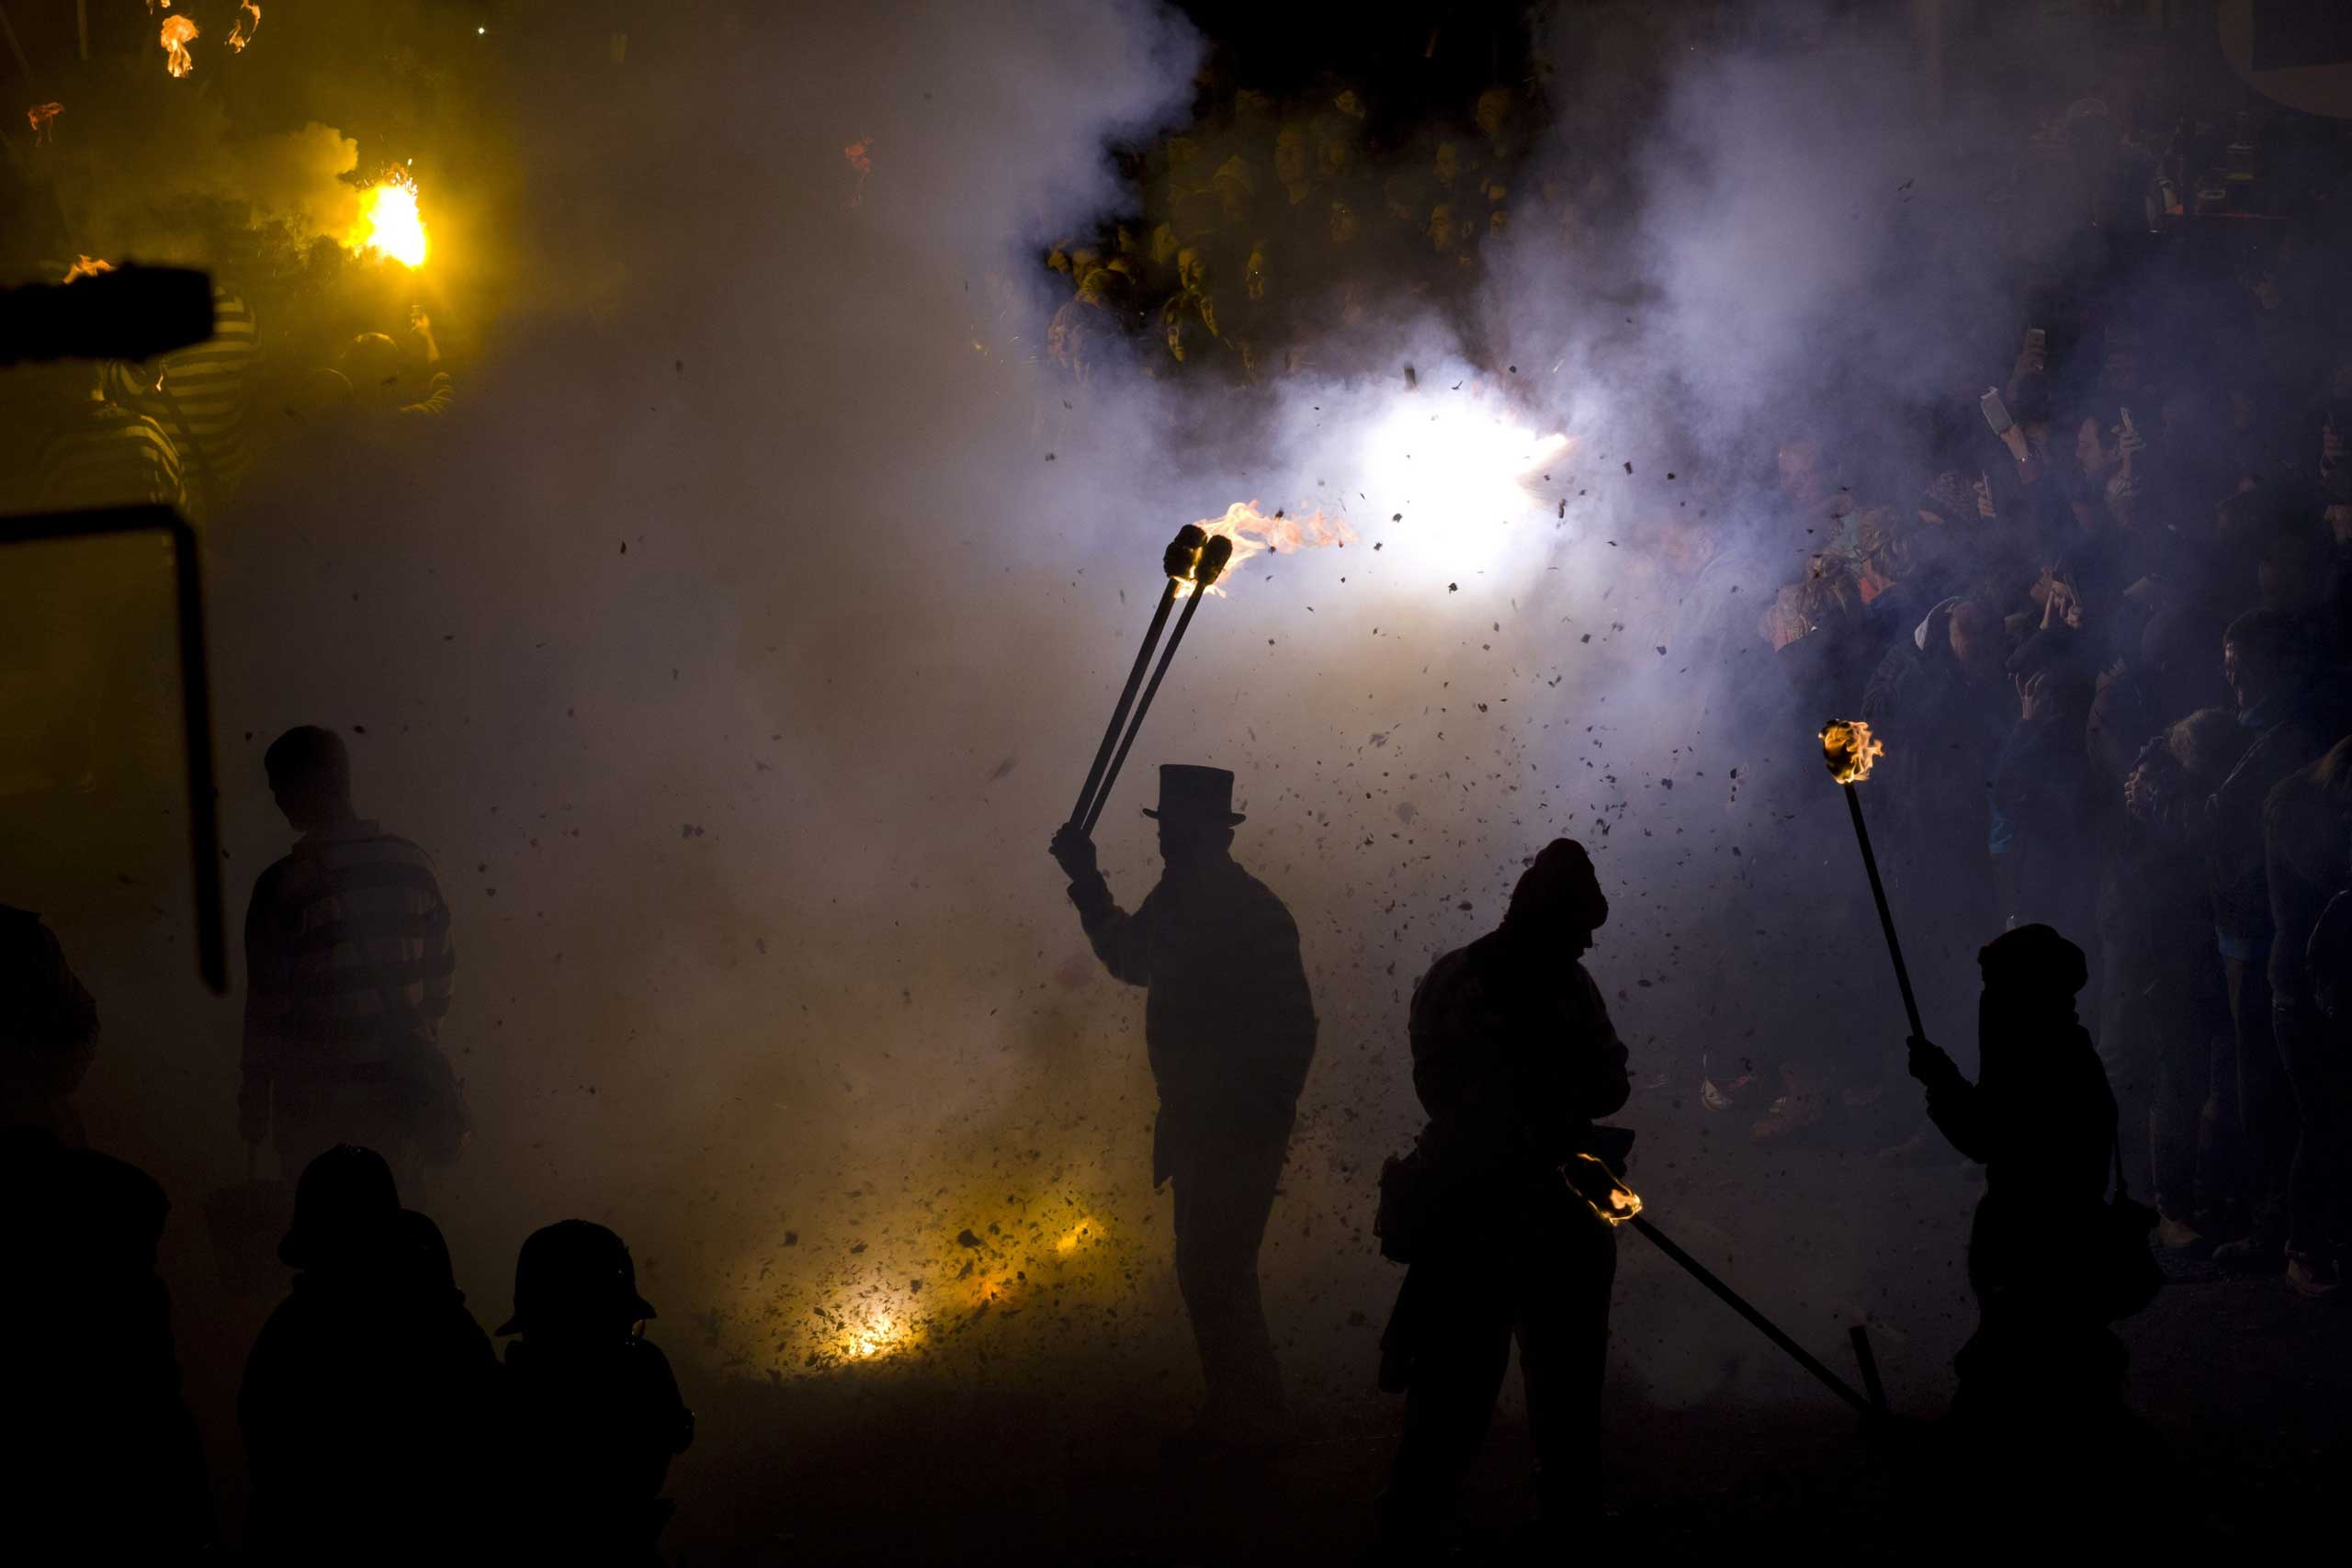 Nov. 5, 2014. A participant in costume holds aloft a torch as bonfire societies parade through the streets of Lewes in Sussex in the U.K., during the traditional Bonfire Night, commemorating the memory of the seventeen Protestant martyrs.